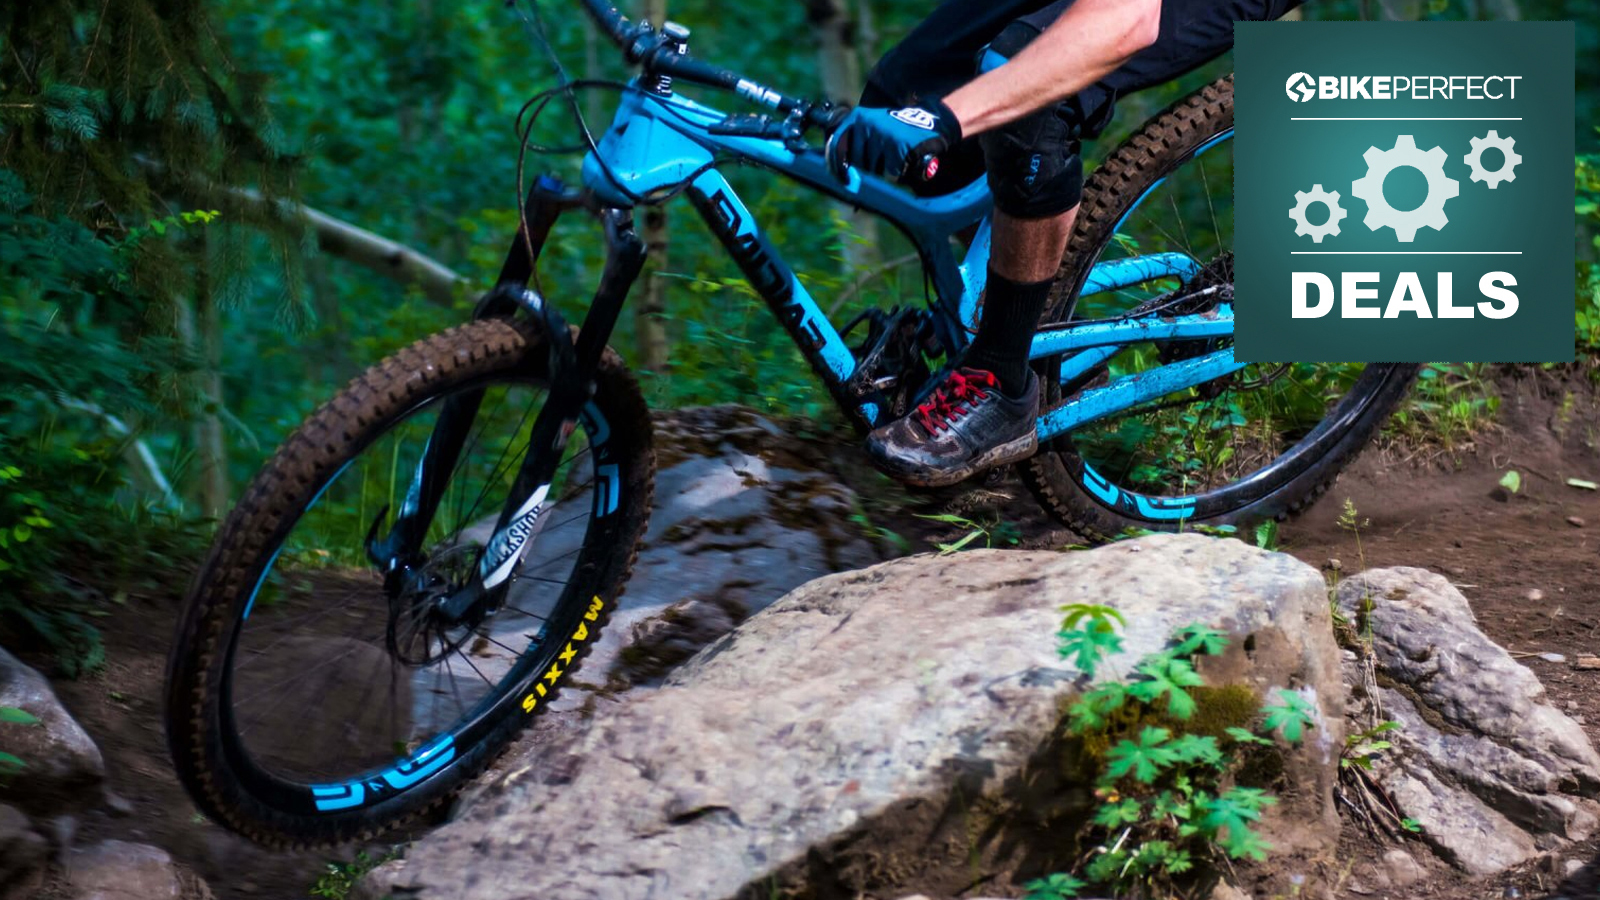 Cheap MTB wheels: Today's best deals on cheap mountain bike wheels